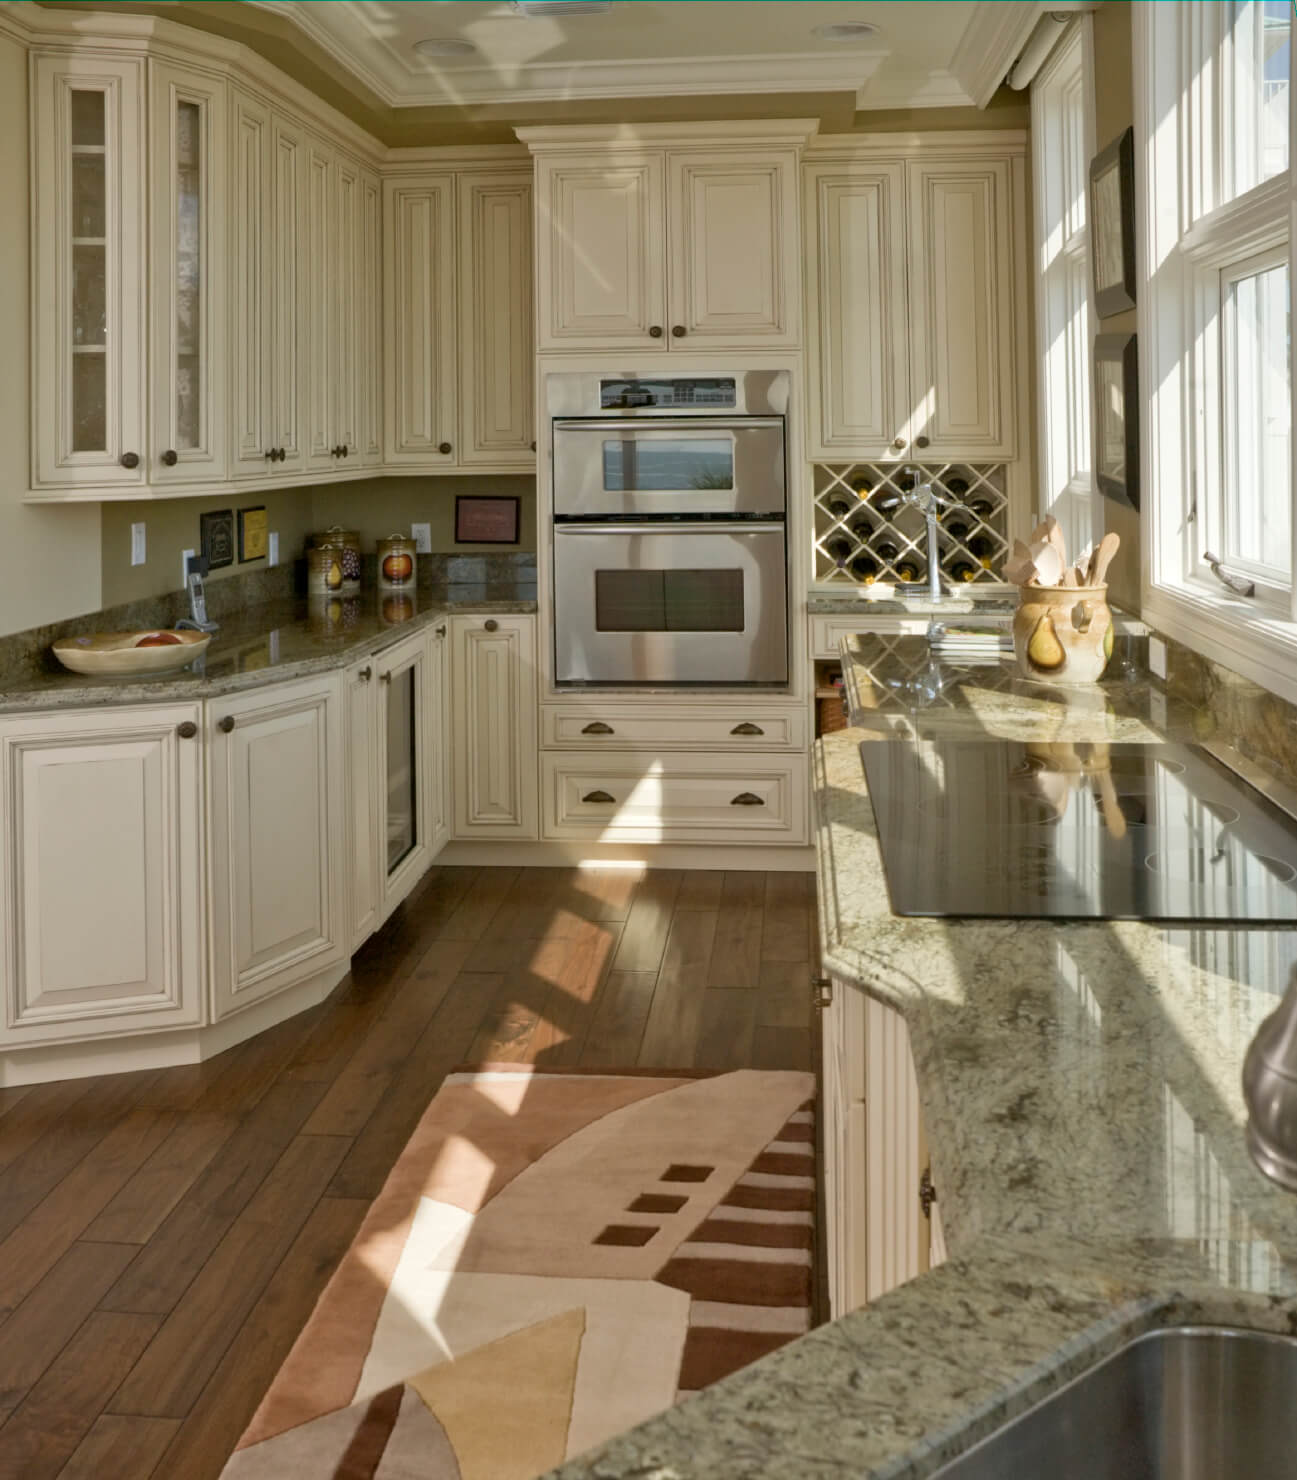 Kitchen Backsplash Designs With White Cabinets. easy white kitchen ...